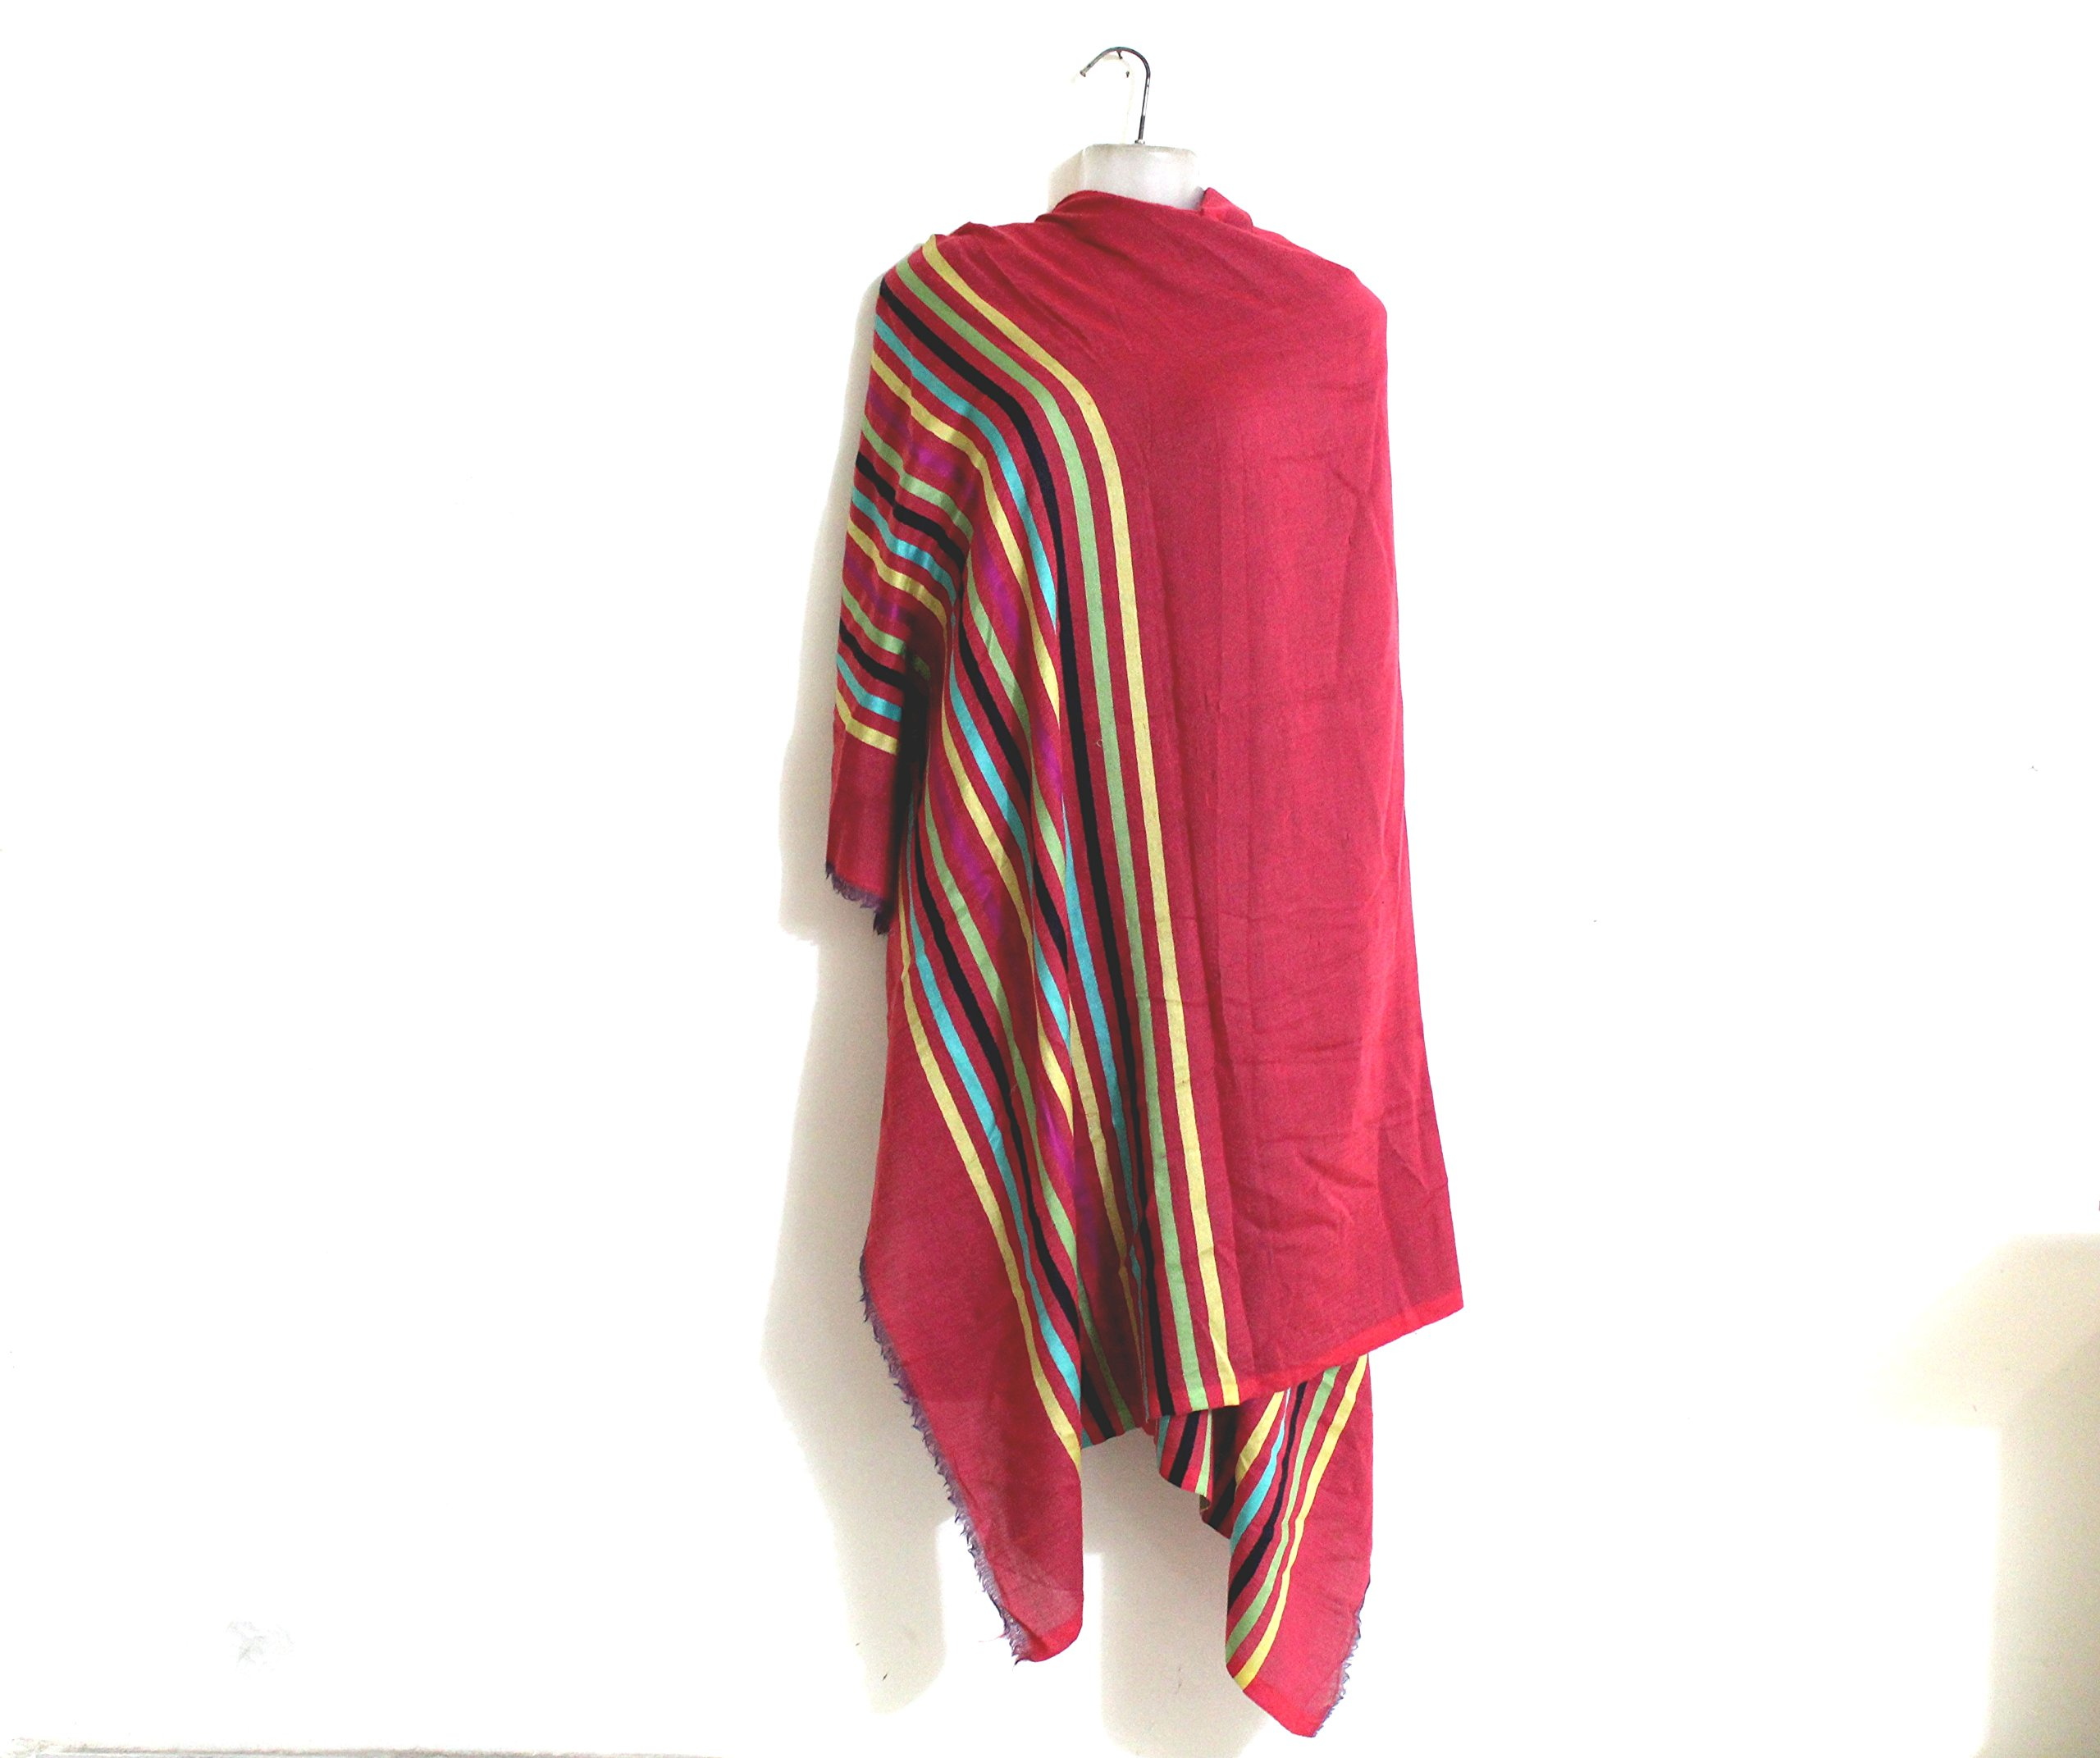 Red Pashmina scarves Colorful bridal wrap wedding shawl cashmere scarf bridesmaid gift -Size 76''x 27'' IDSC10